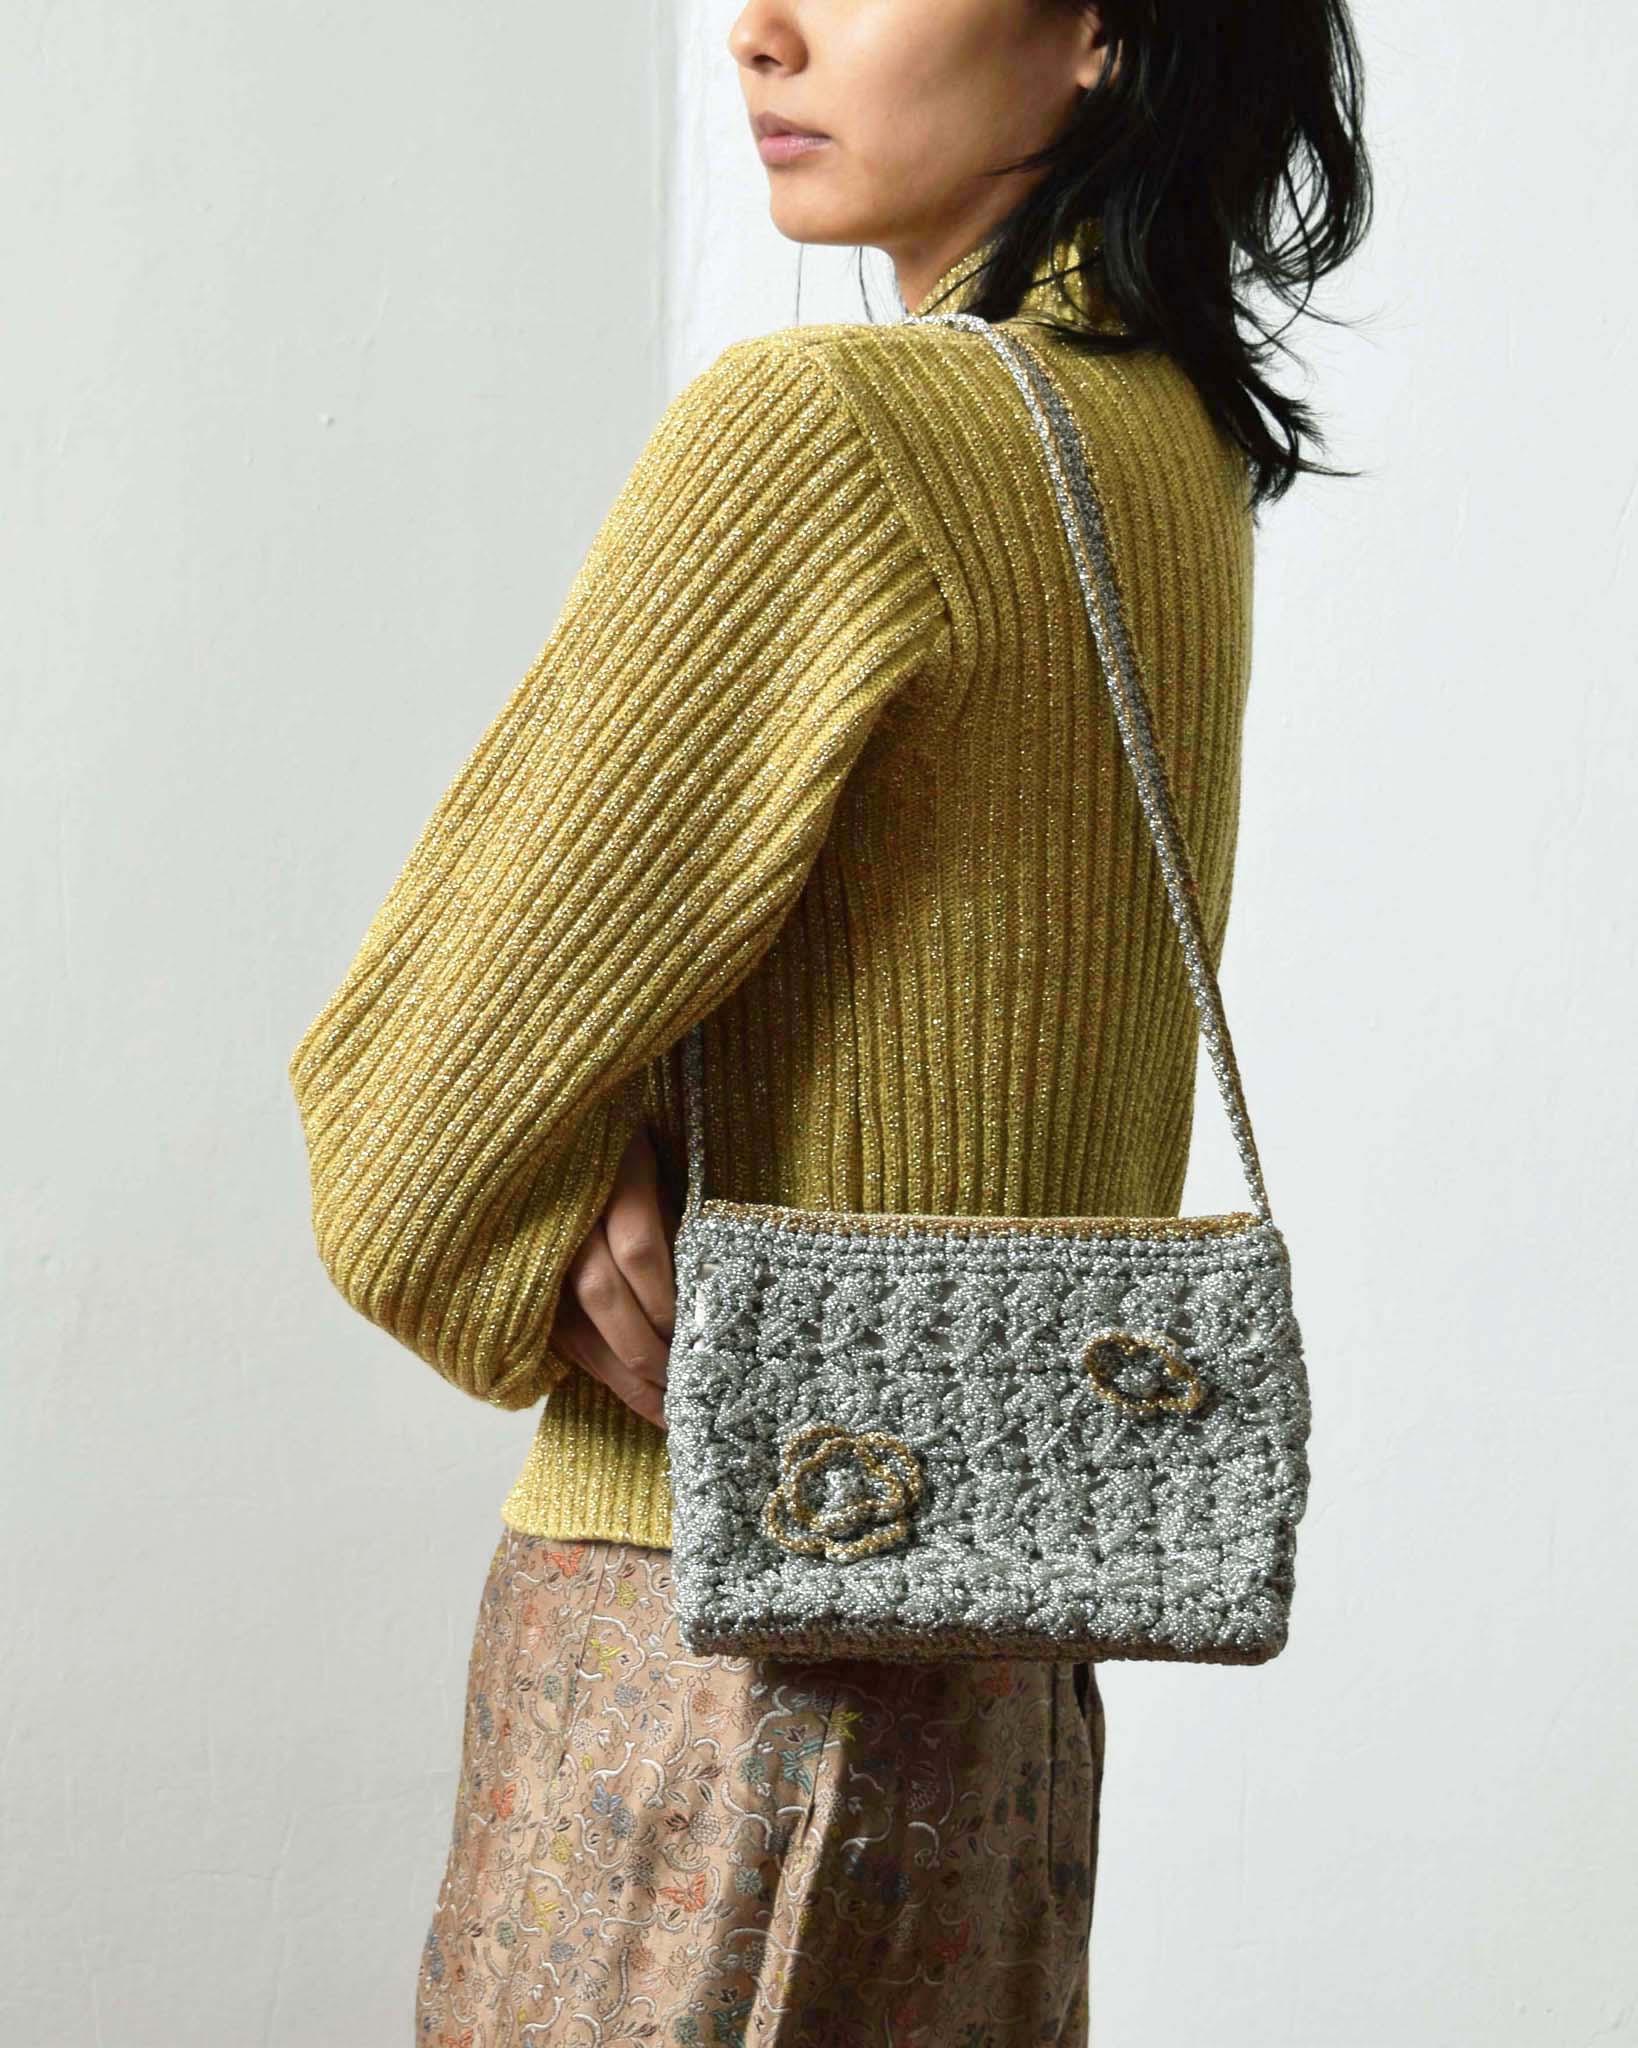 Vintage 1940s Metallic Crochet Purse